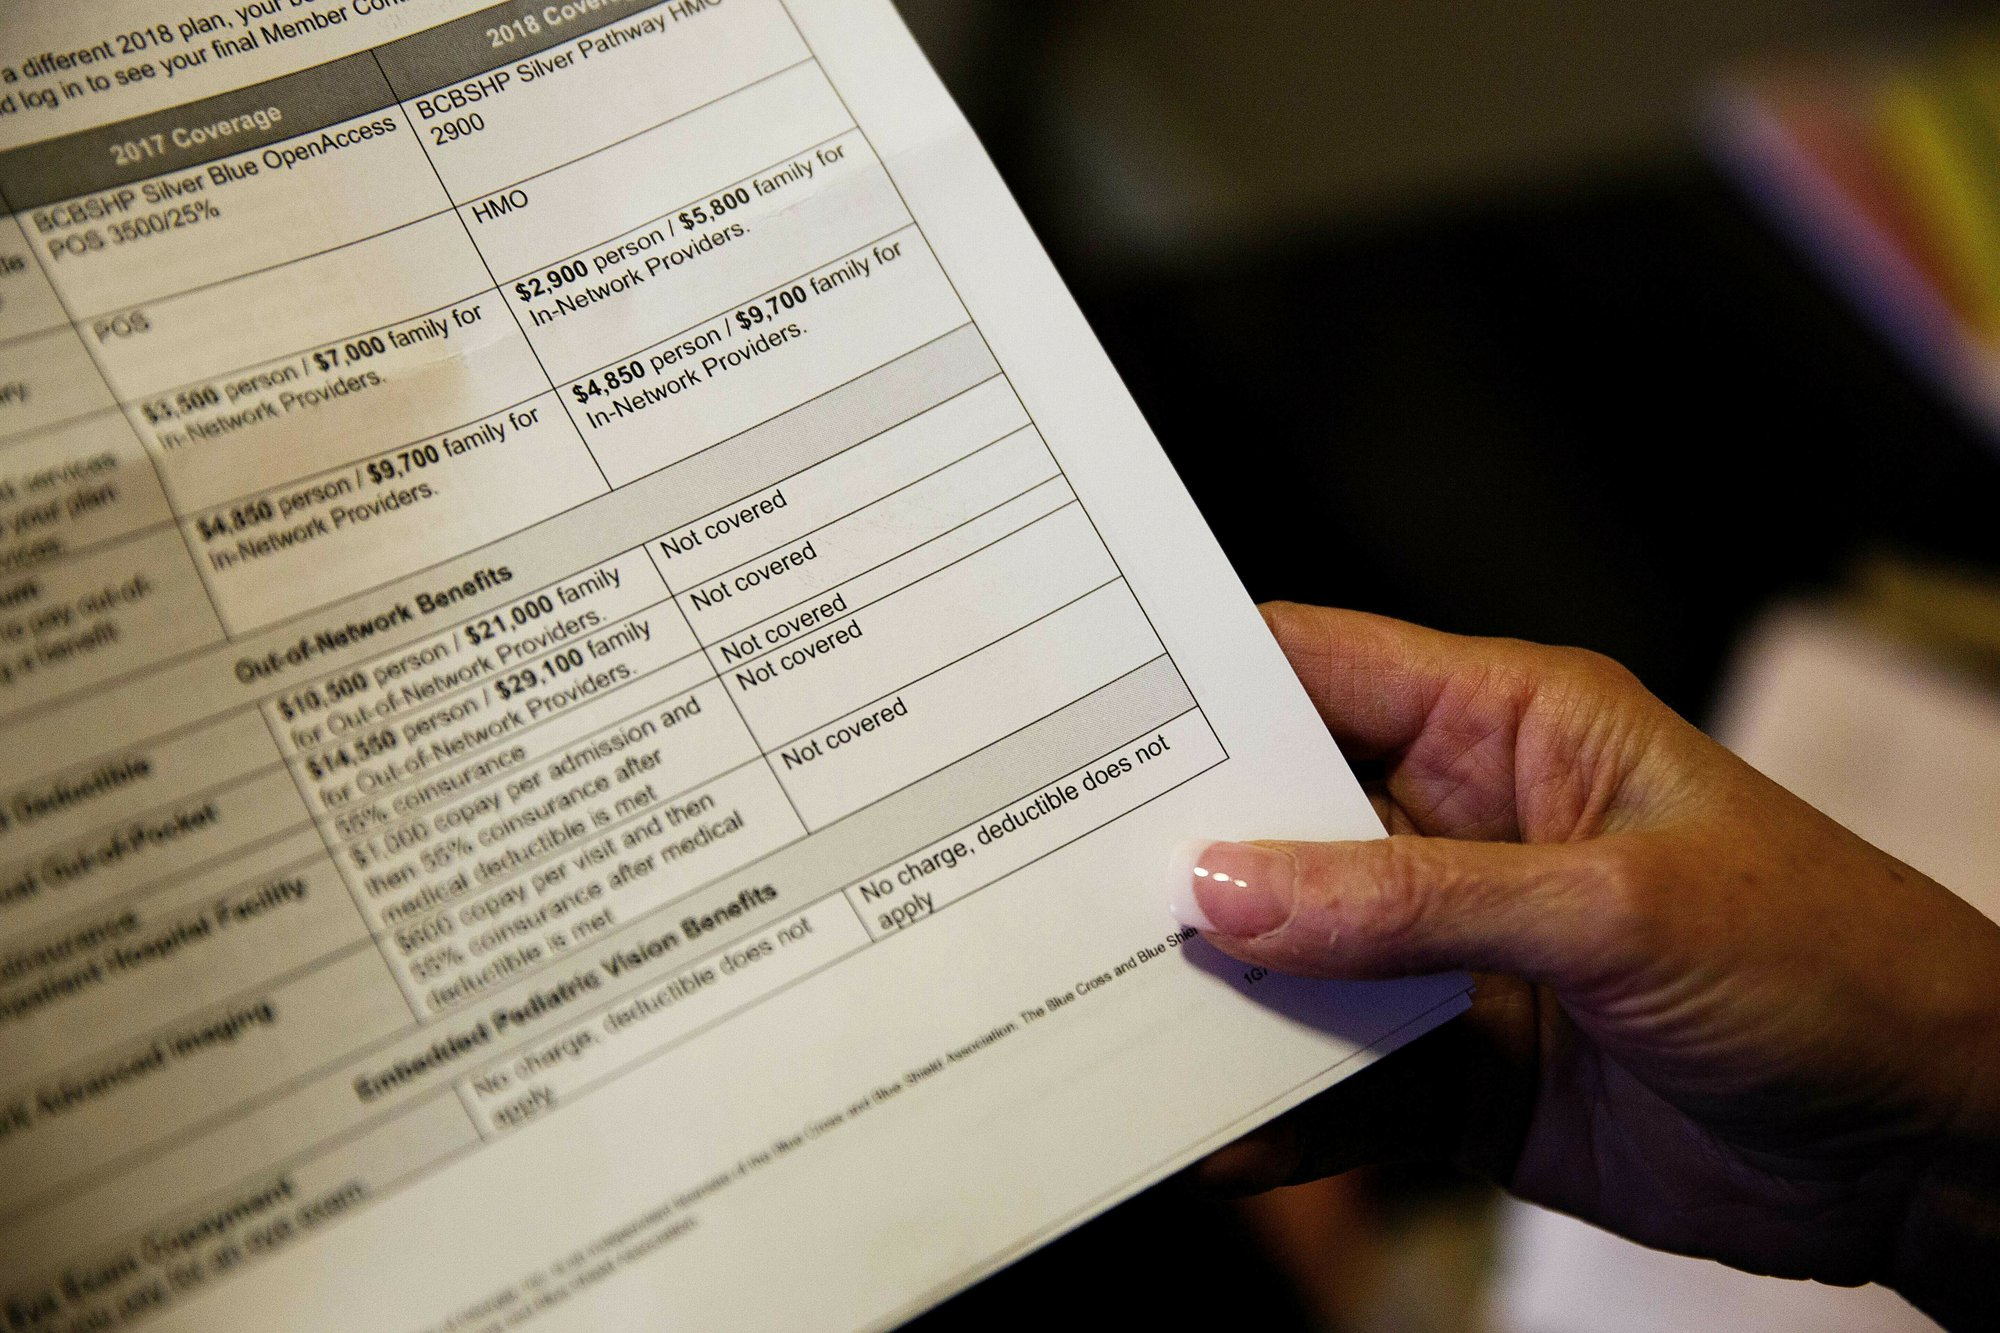 Health claim rejected? Some steps to appeal a denial